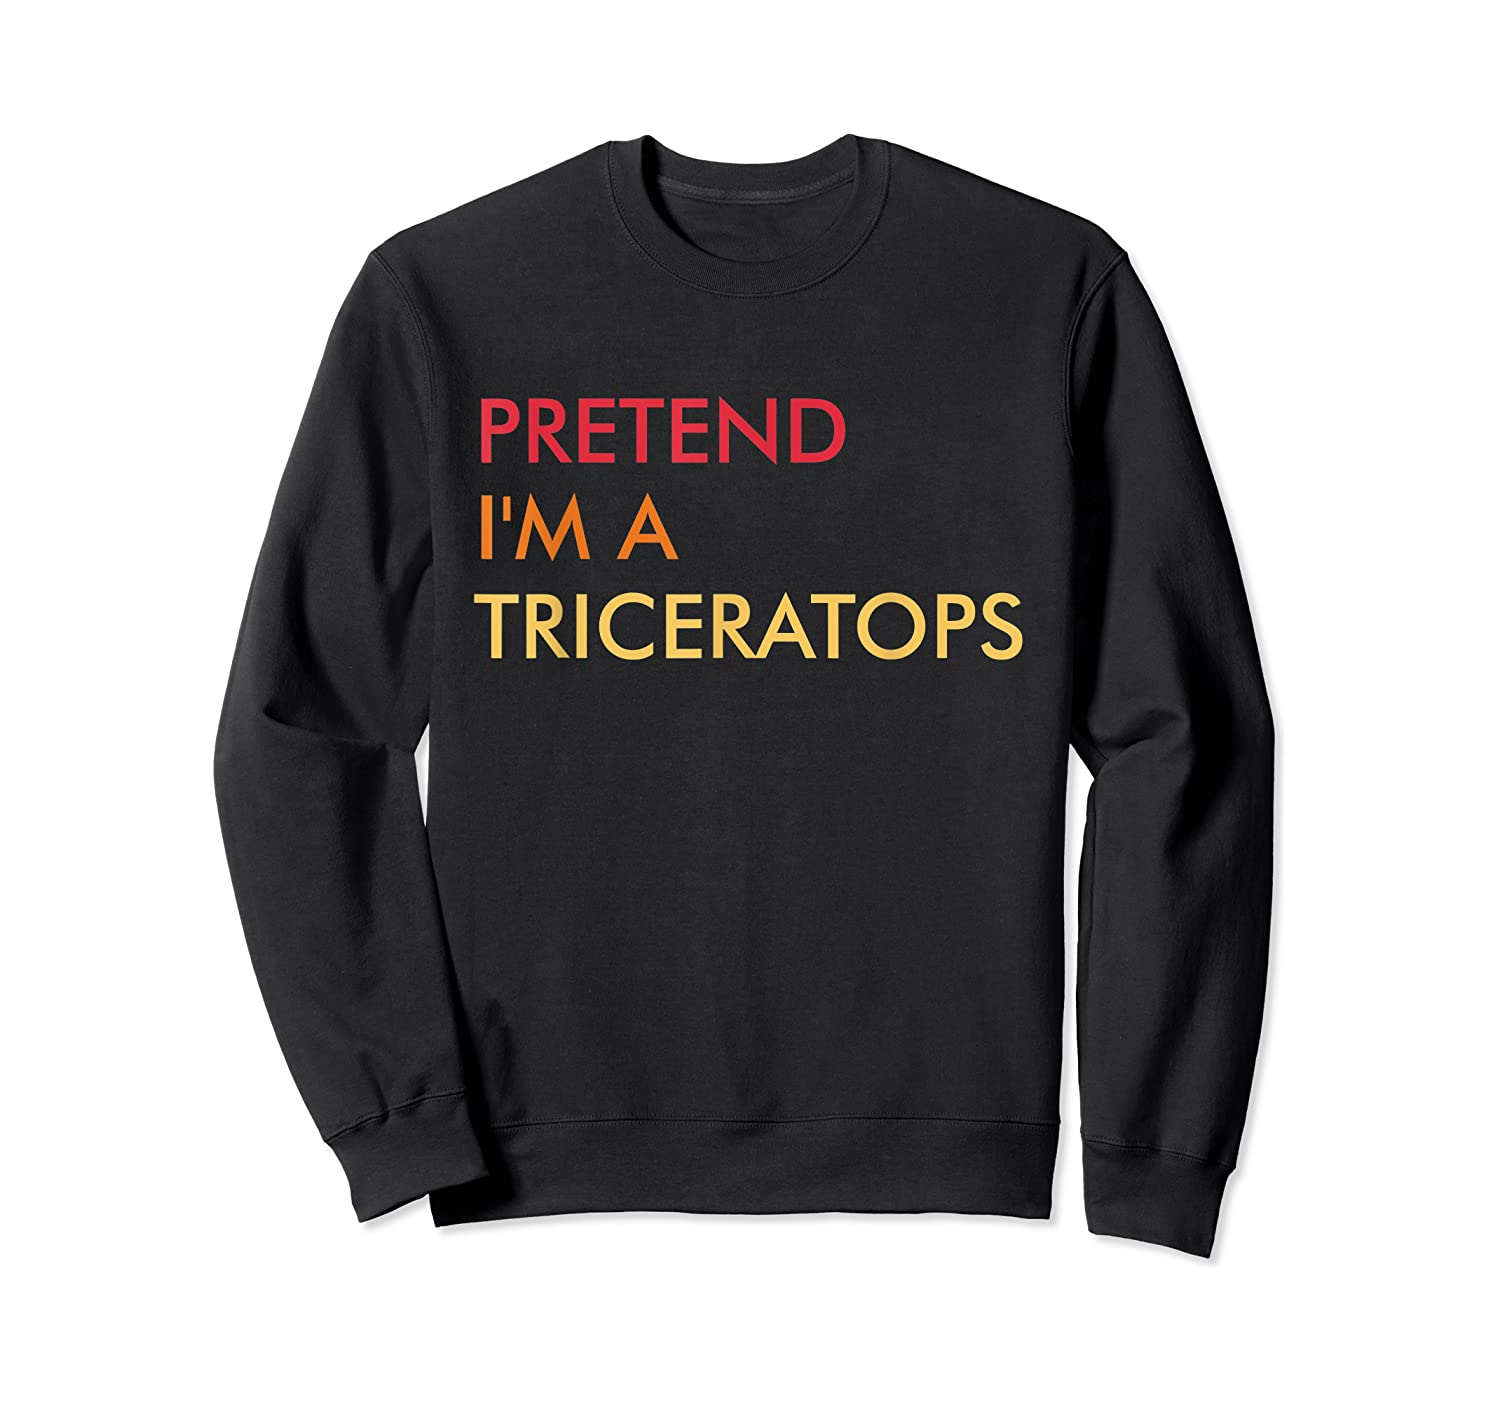 Pretend I'm A Triceratops Lazy Halloween Party Costume T-shirt Crewneck Sweater